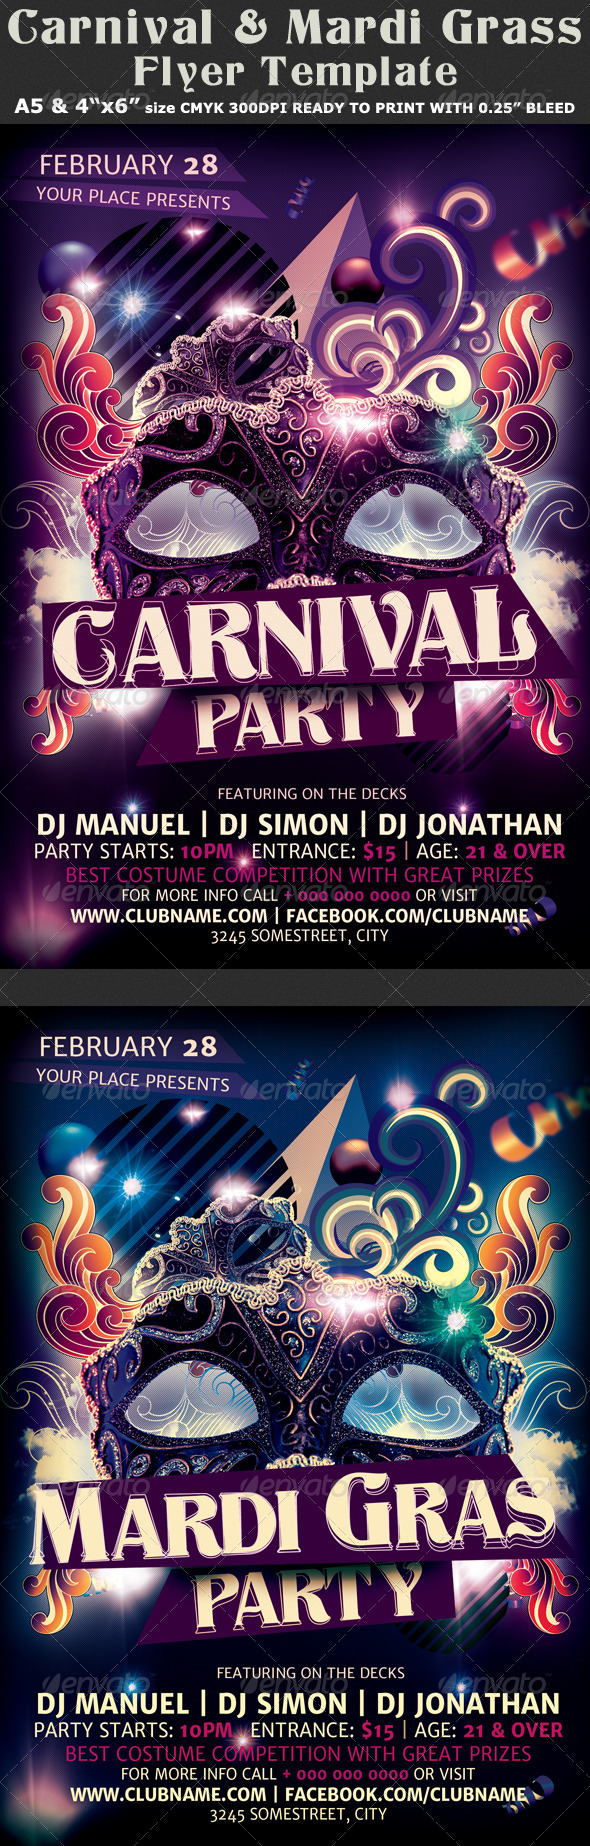 Carnival n Mardi Gras Party Flyer Template v2 - Clubs & Parties Events